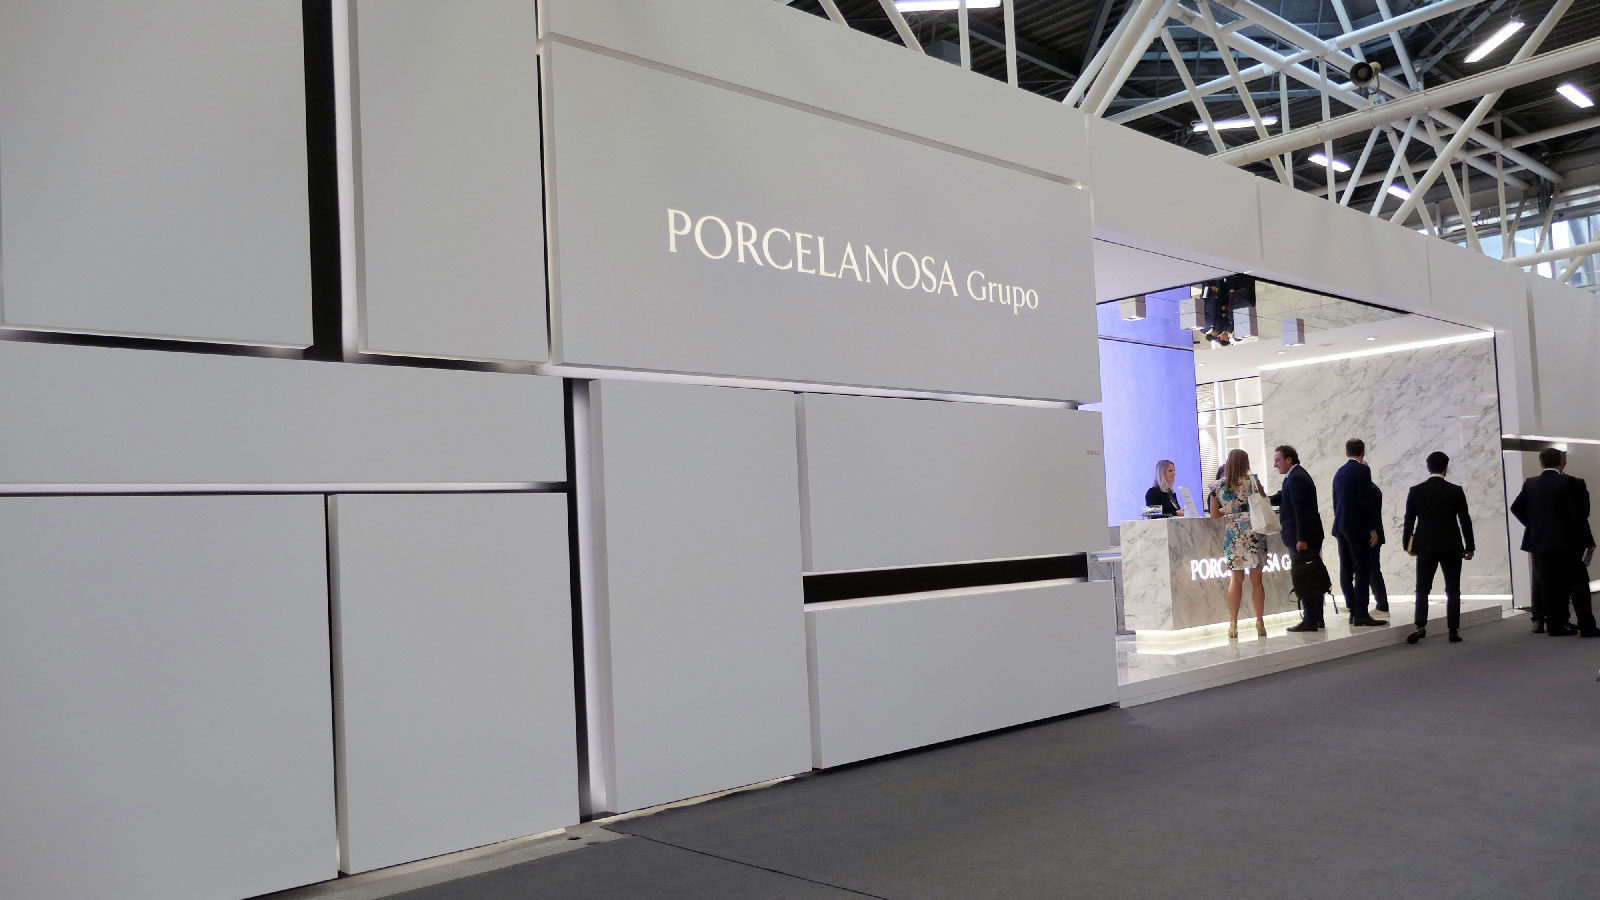 The PORCELANOSA Grupo strengthens its presence at Cersaie with new ceramic collections and premium materials